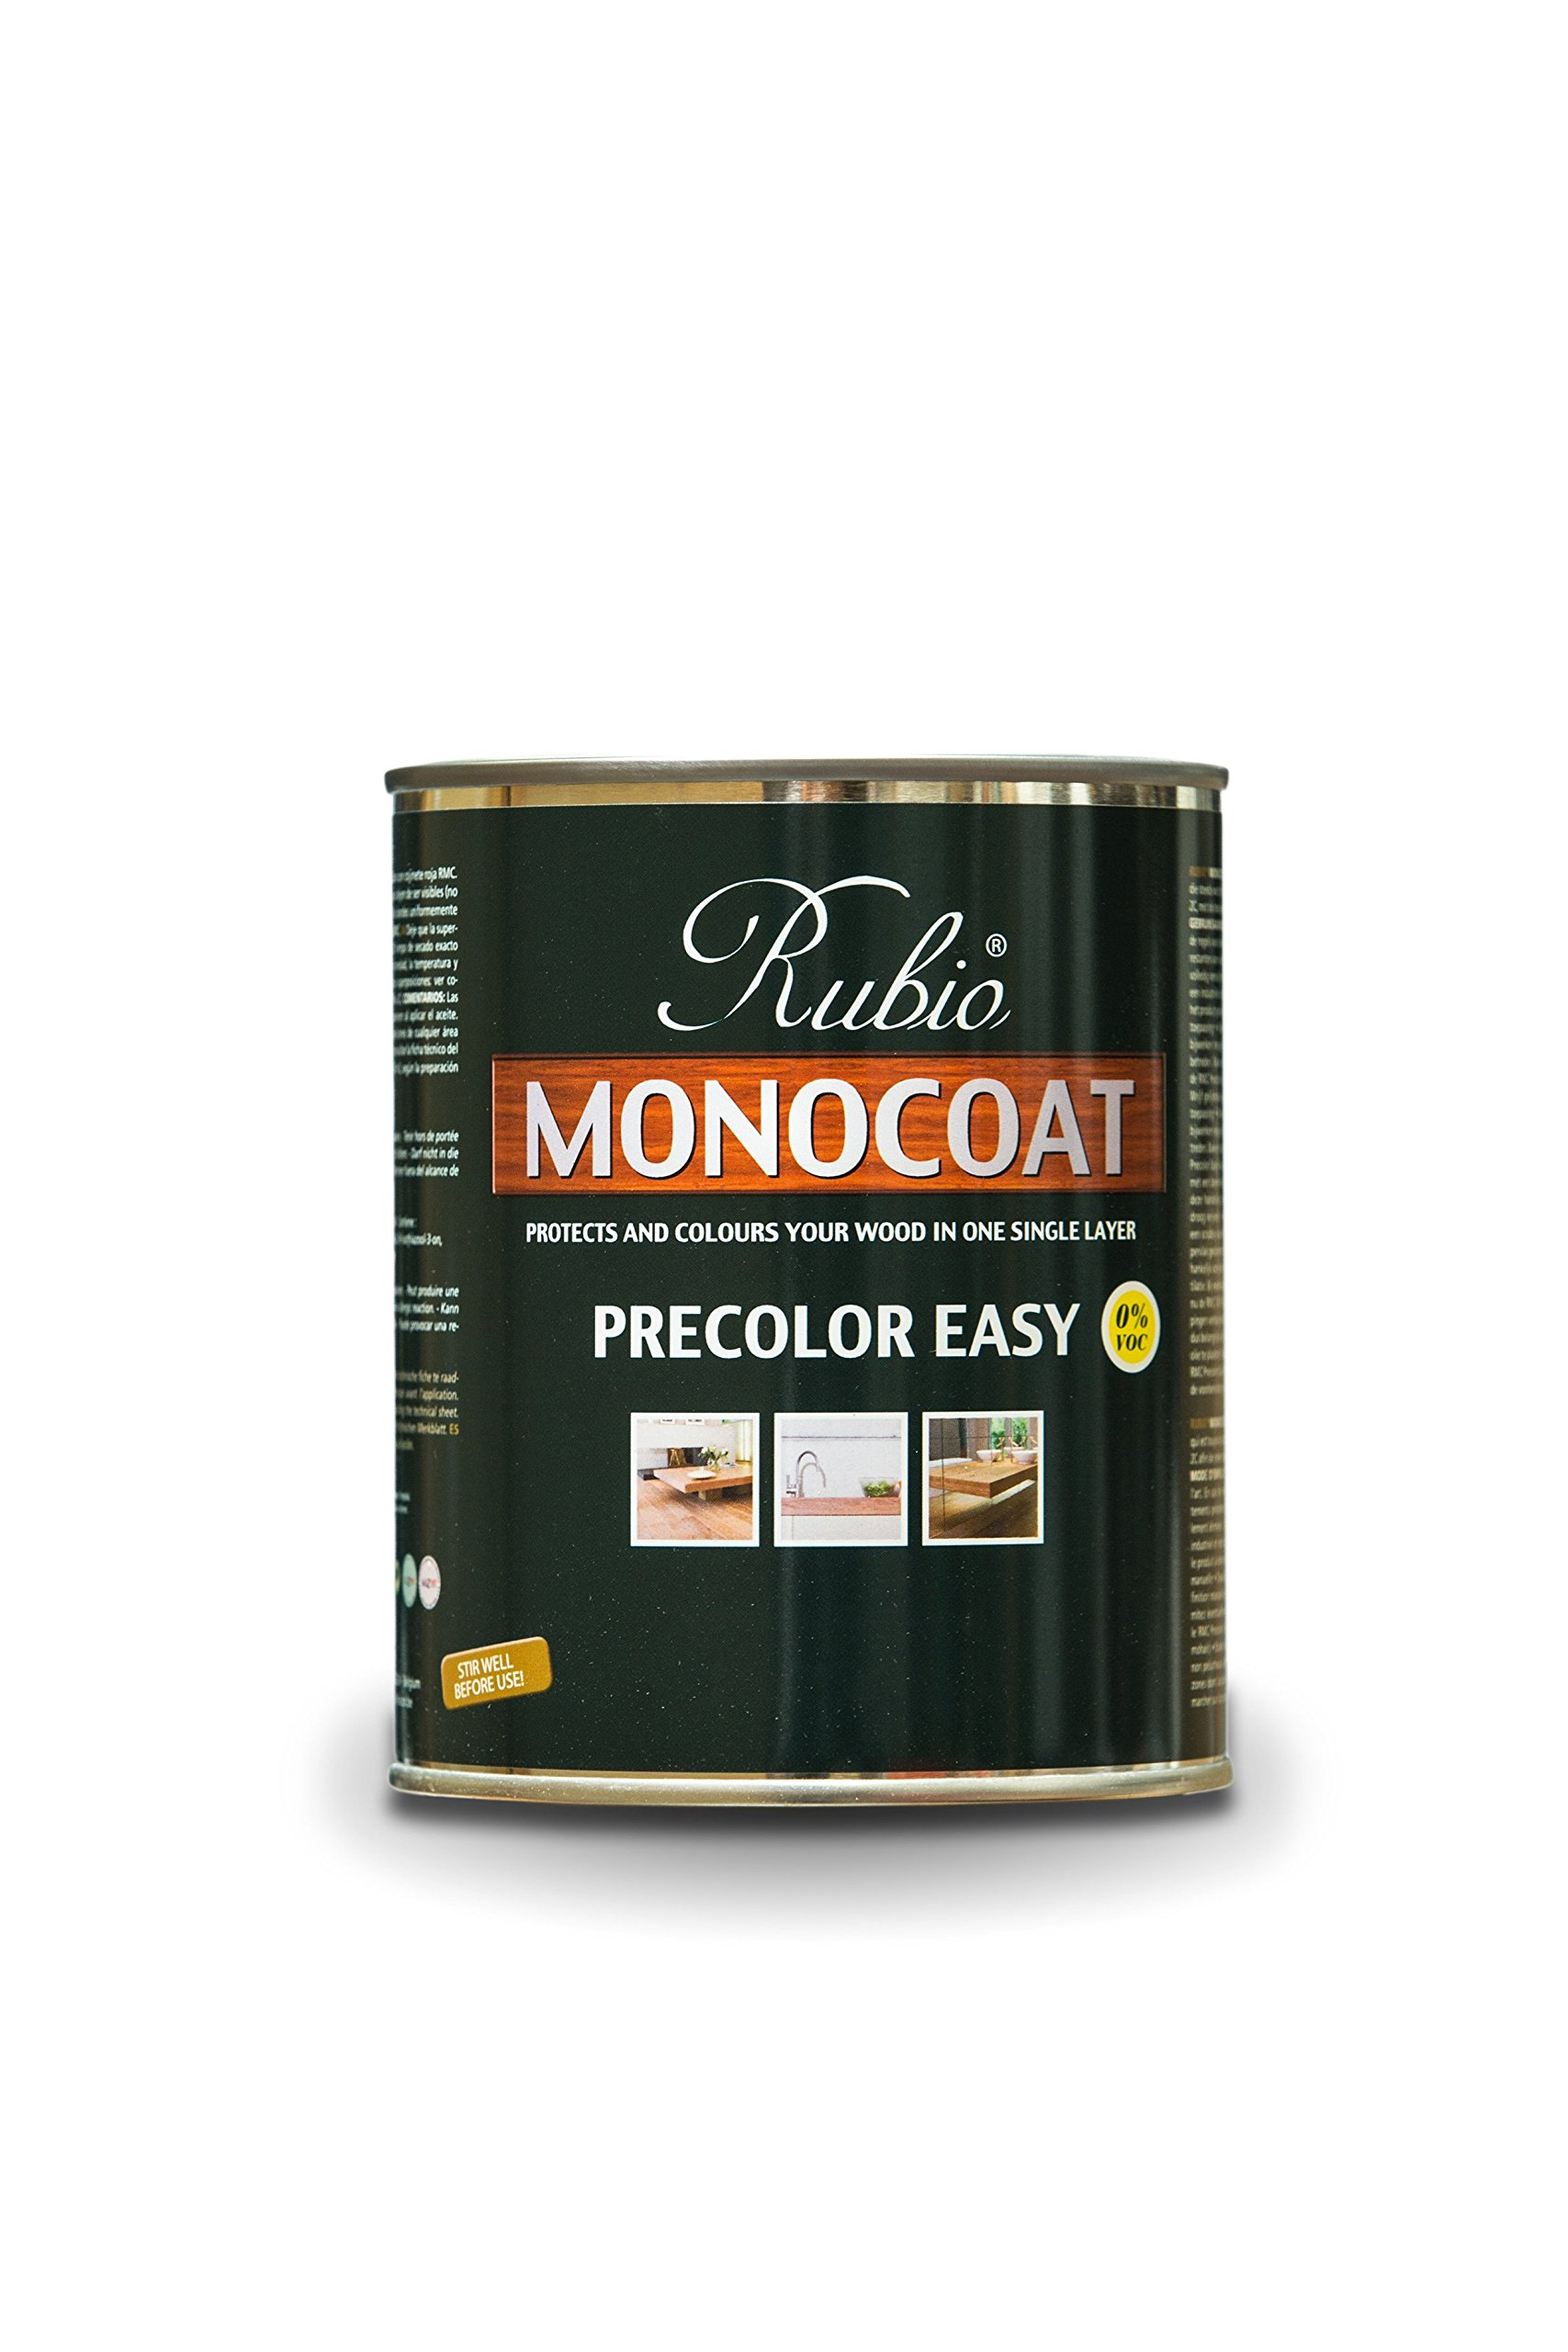 Rubio Monocoat Wood Stain Pre-Color Easy Mystic Brown 1 Liter